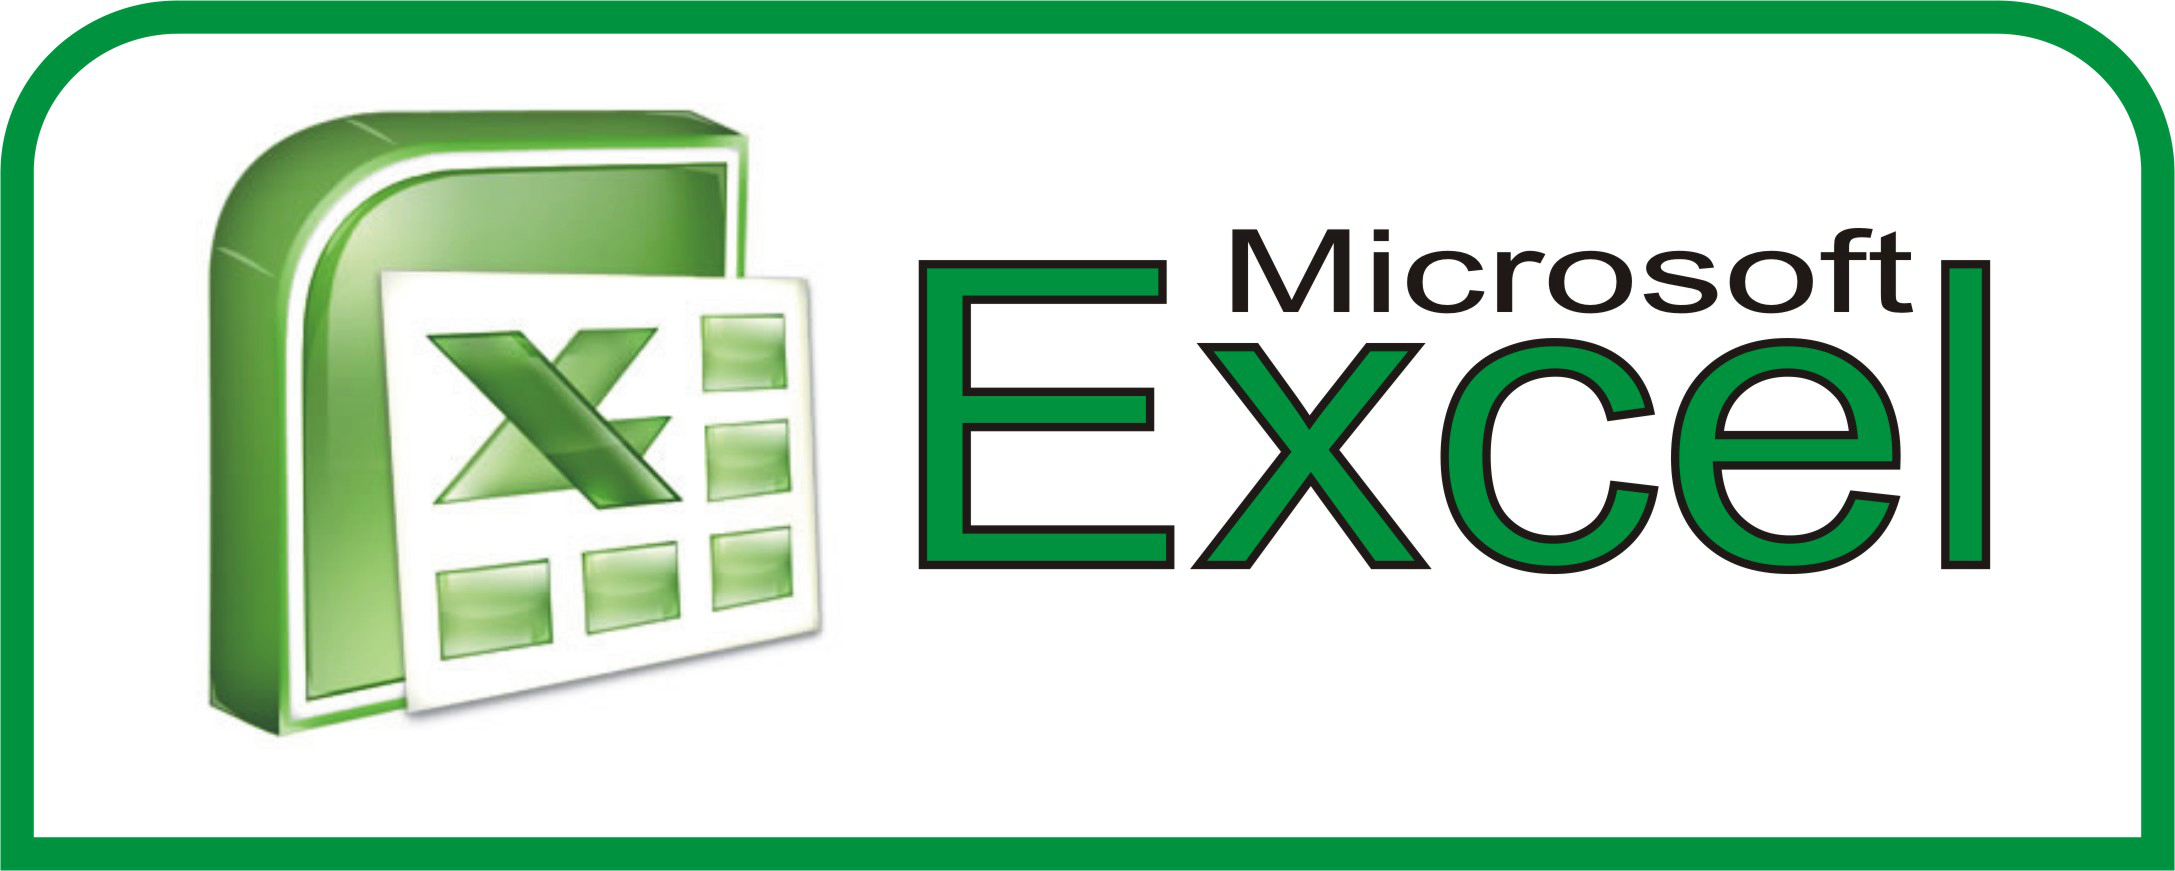 Ediblewildsus  Marvellous  Excel Shortcuts You Probably Didnt Know About  Techdissected With Magnificent Regression Analysis Excel Besides Index Function Excel Furthermore Formulas In Excel With Beauteous Conditional Formatting In Excel Also Mr Excel In Addition Invoice Template Excel And How To Lock A Row In Excel As Well As Remove Spaces In Excel Additionally Excel Tutorials From Techdissectedcom With Ediblewildsus  Magnificent  Excel Shortcuts You Probably Didnt Know About  Techdissected With Beauteous Regression Analysis Excel Besides Index Function Excel Furthermore Formulas In Excel And Marvellous Conditional Formatting In Excel Also Mr Excel In Addition Invoice Template Excel From Techdissectedcom